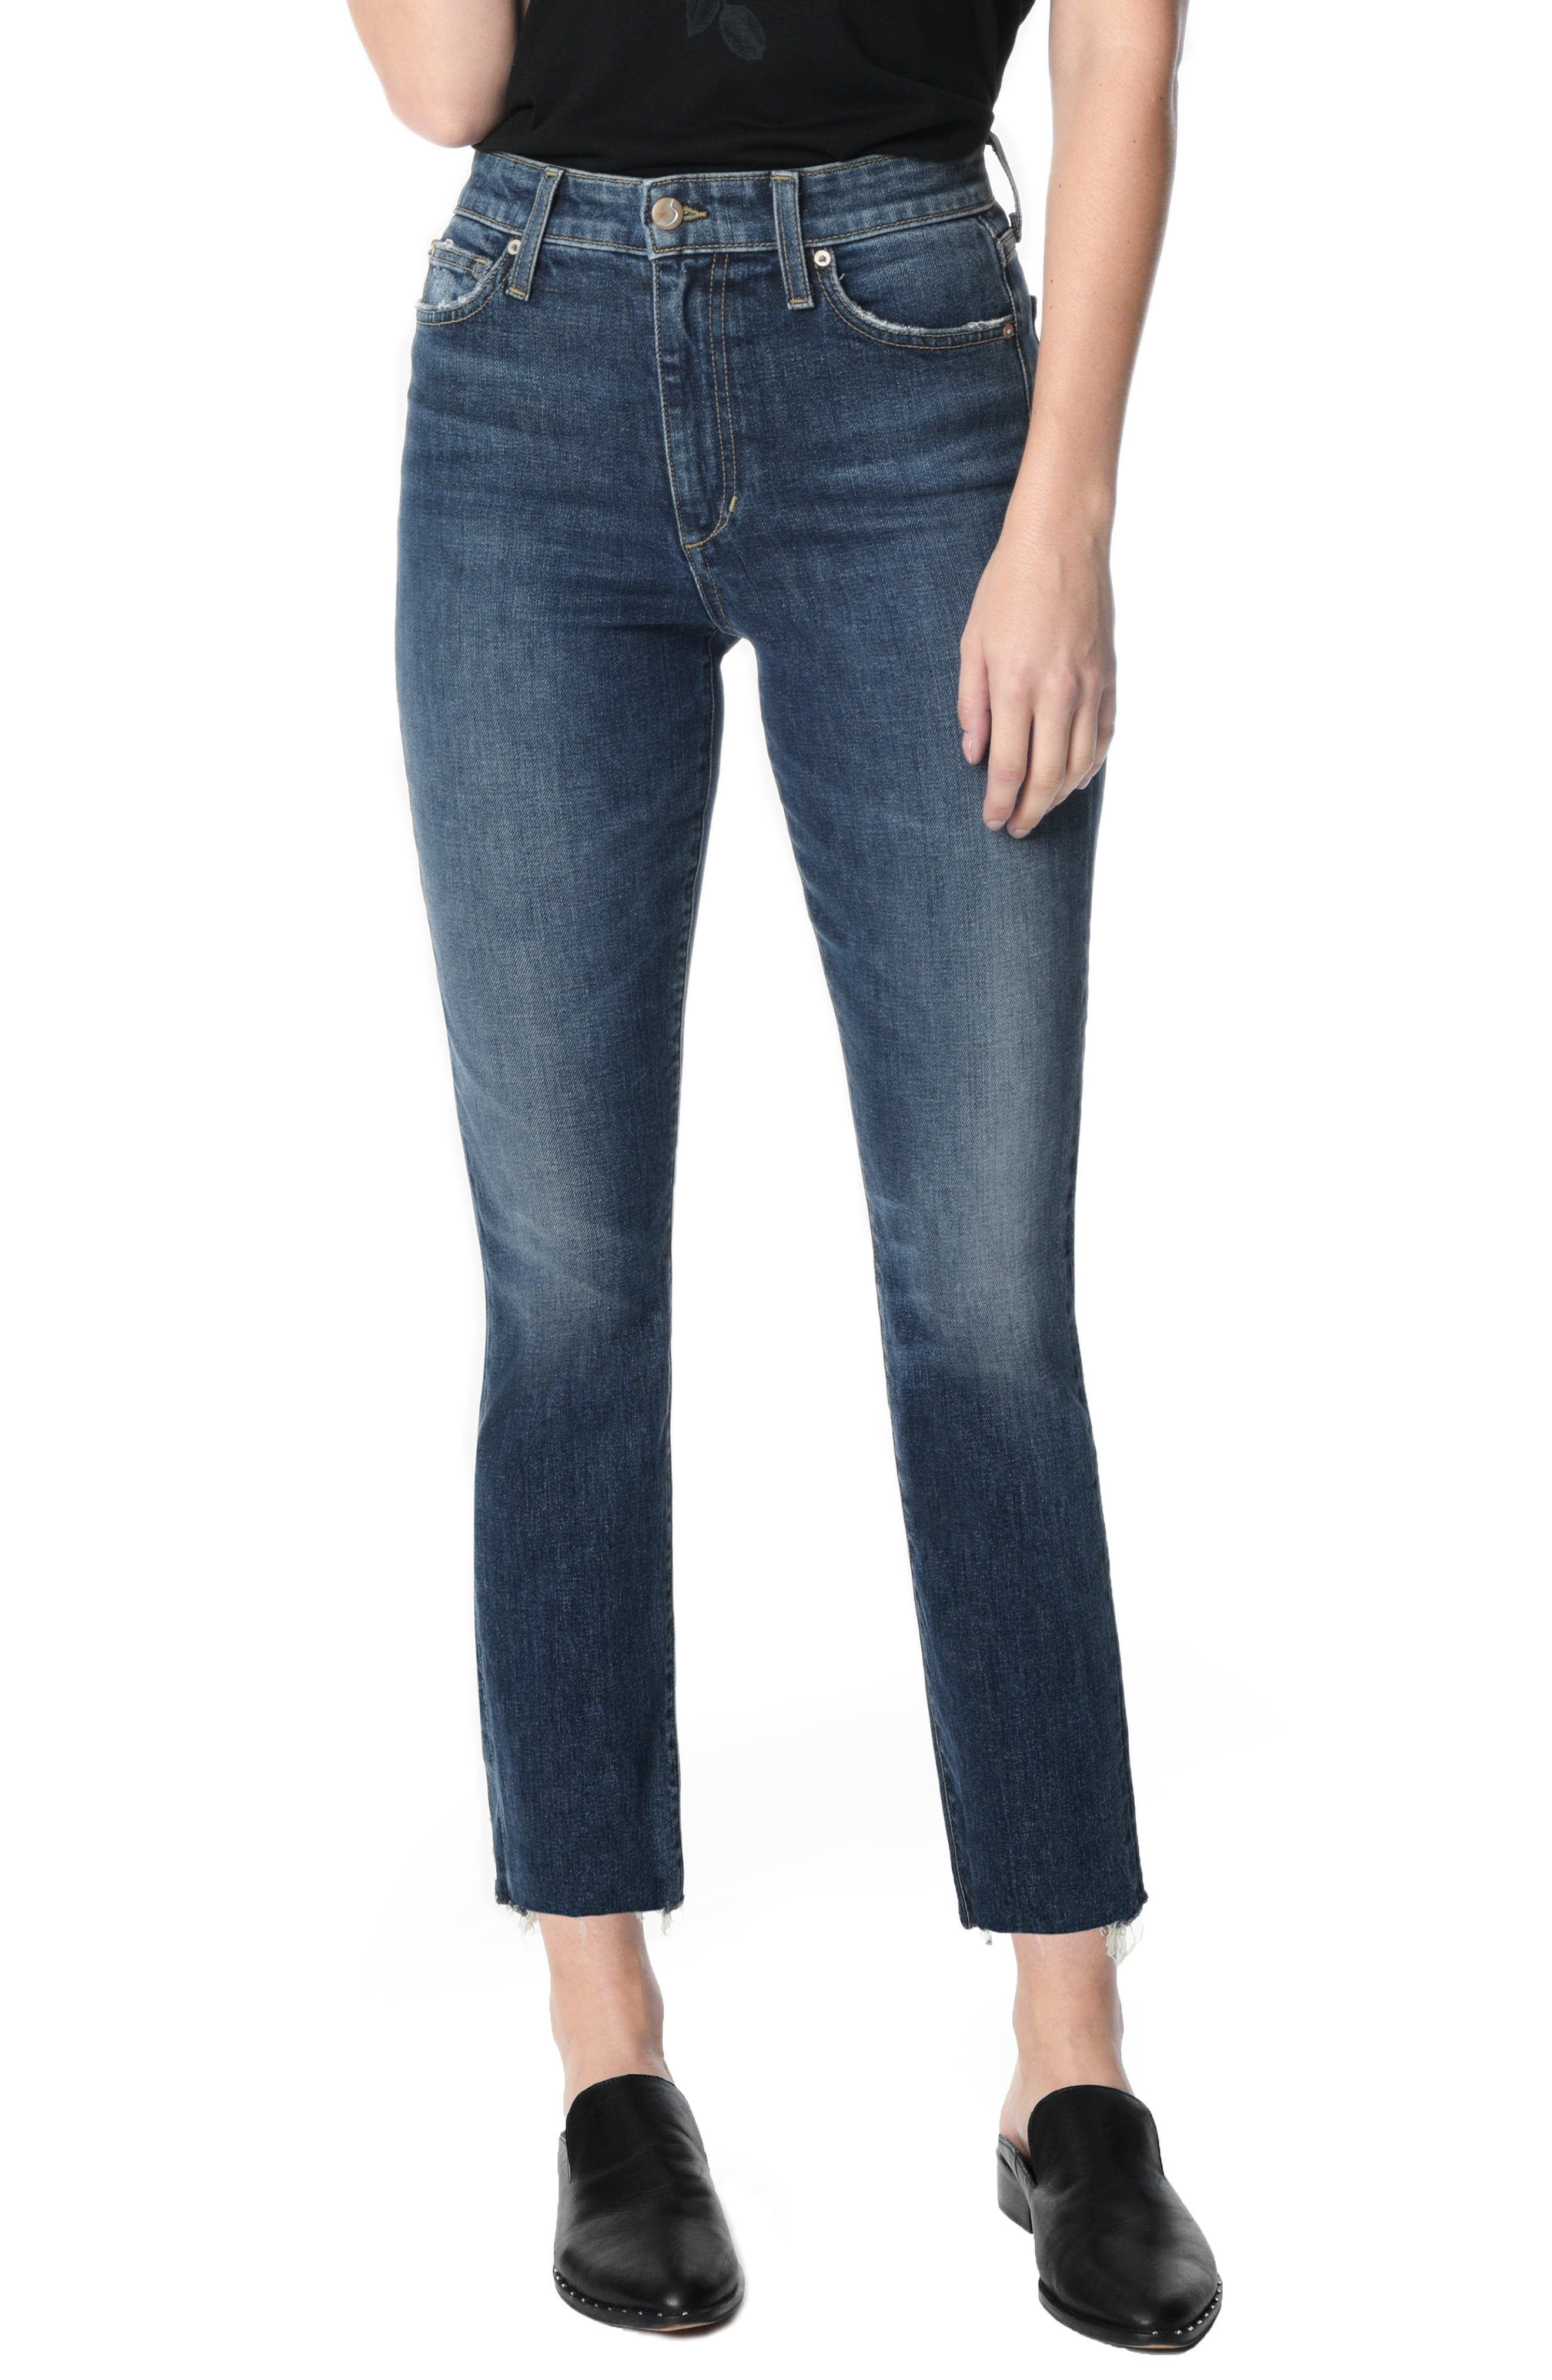 Joes Jeans Womens Milla High Rise Straight Crop Jean